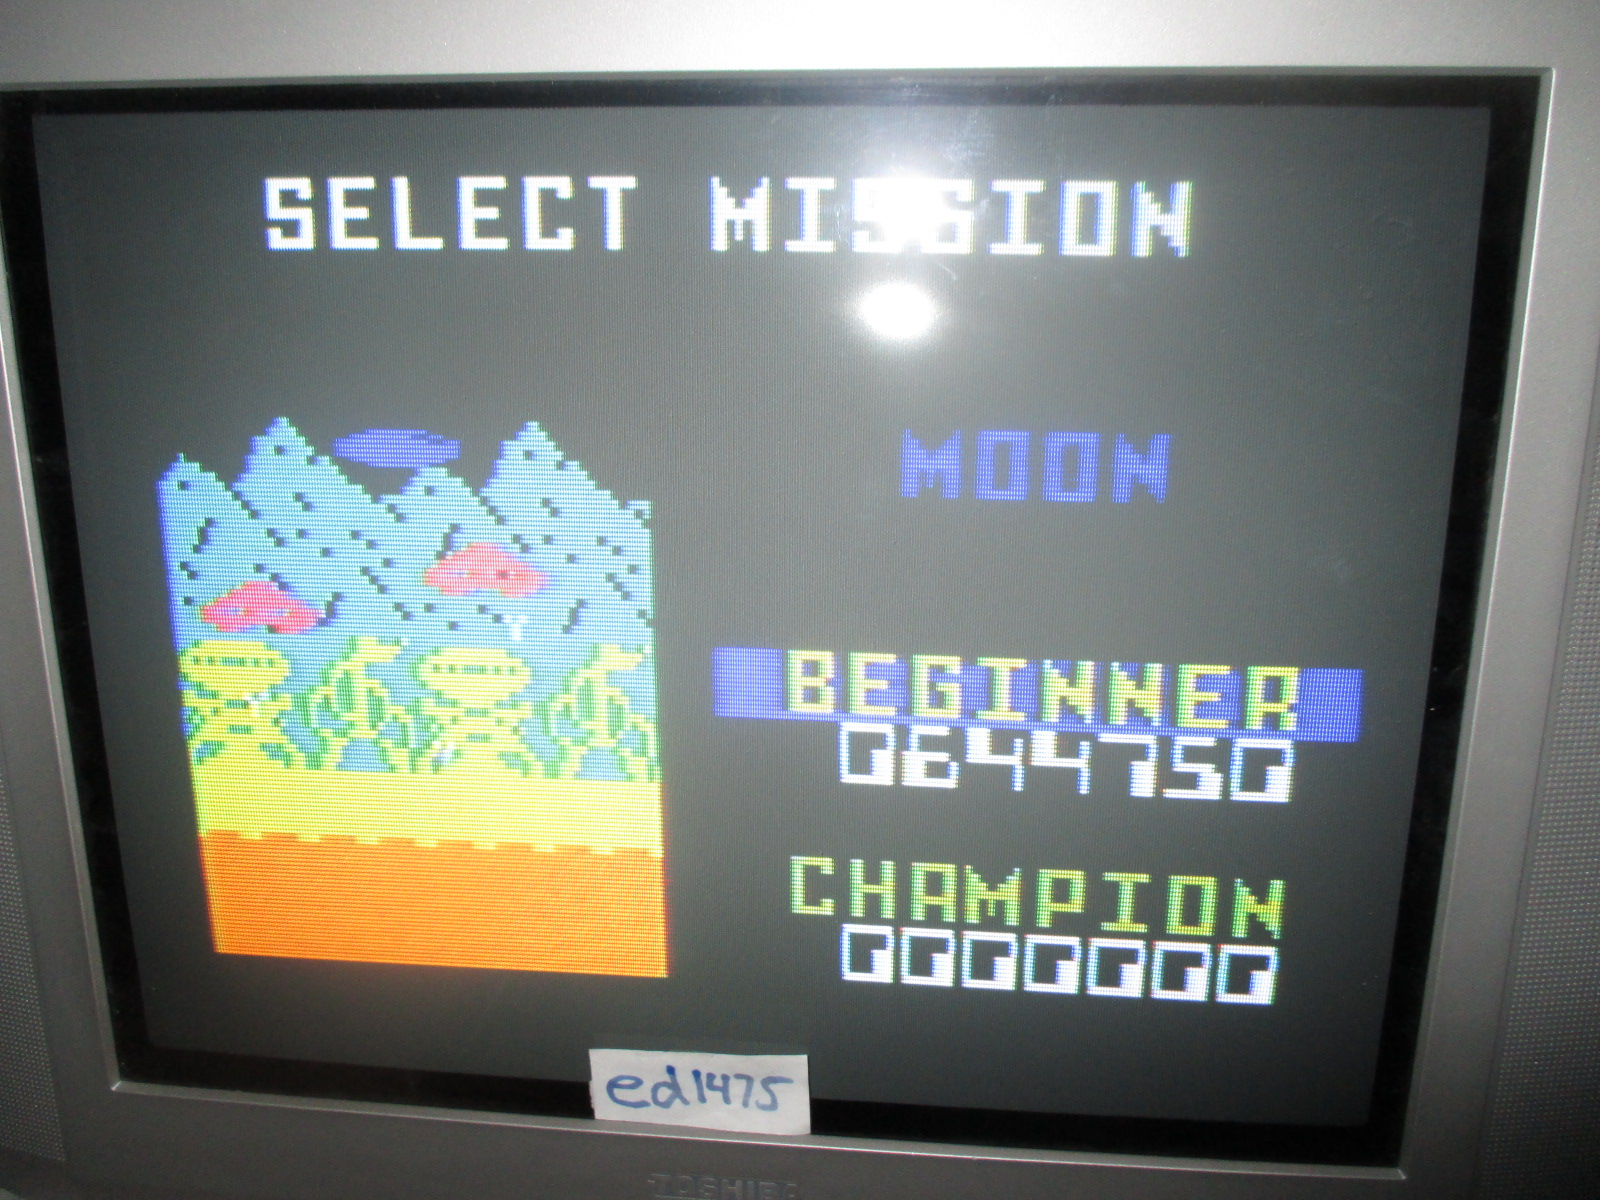 ed1475: Space Patrol: Moon Beginner (Intellivision) 644,750 points on 2014-06-25 19:31:05